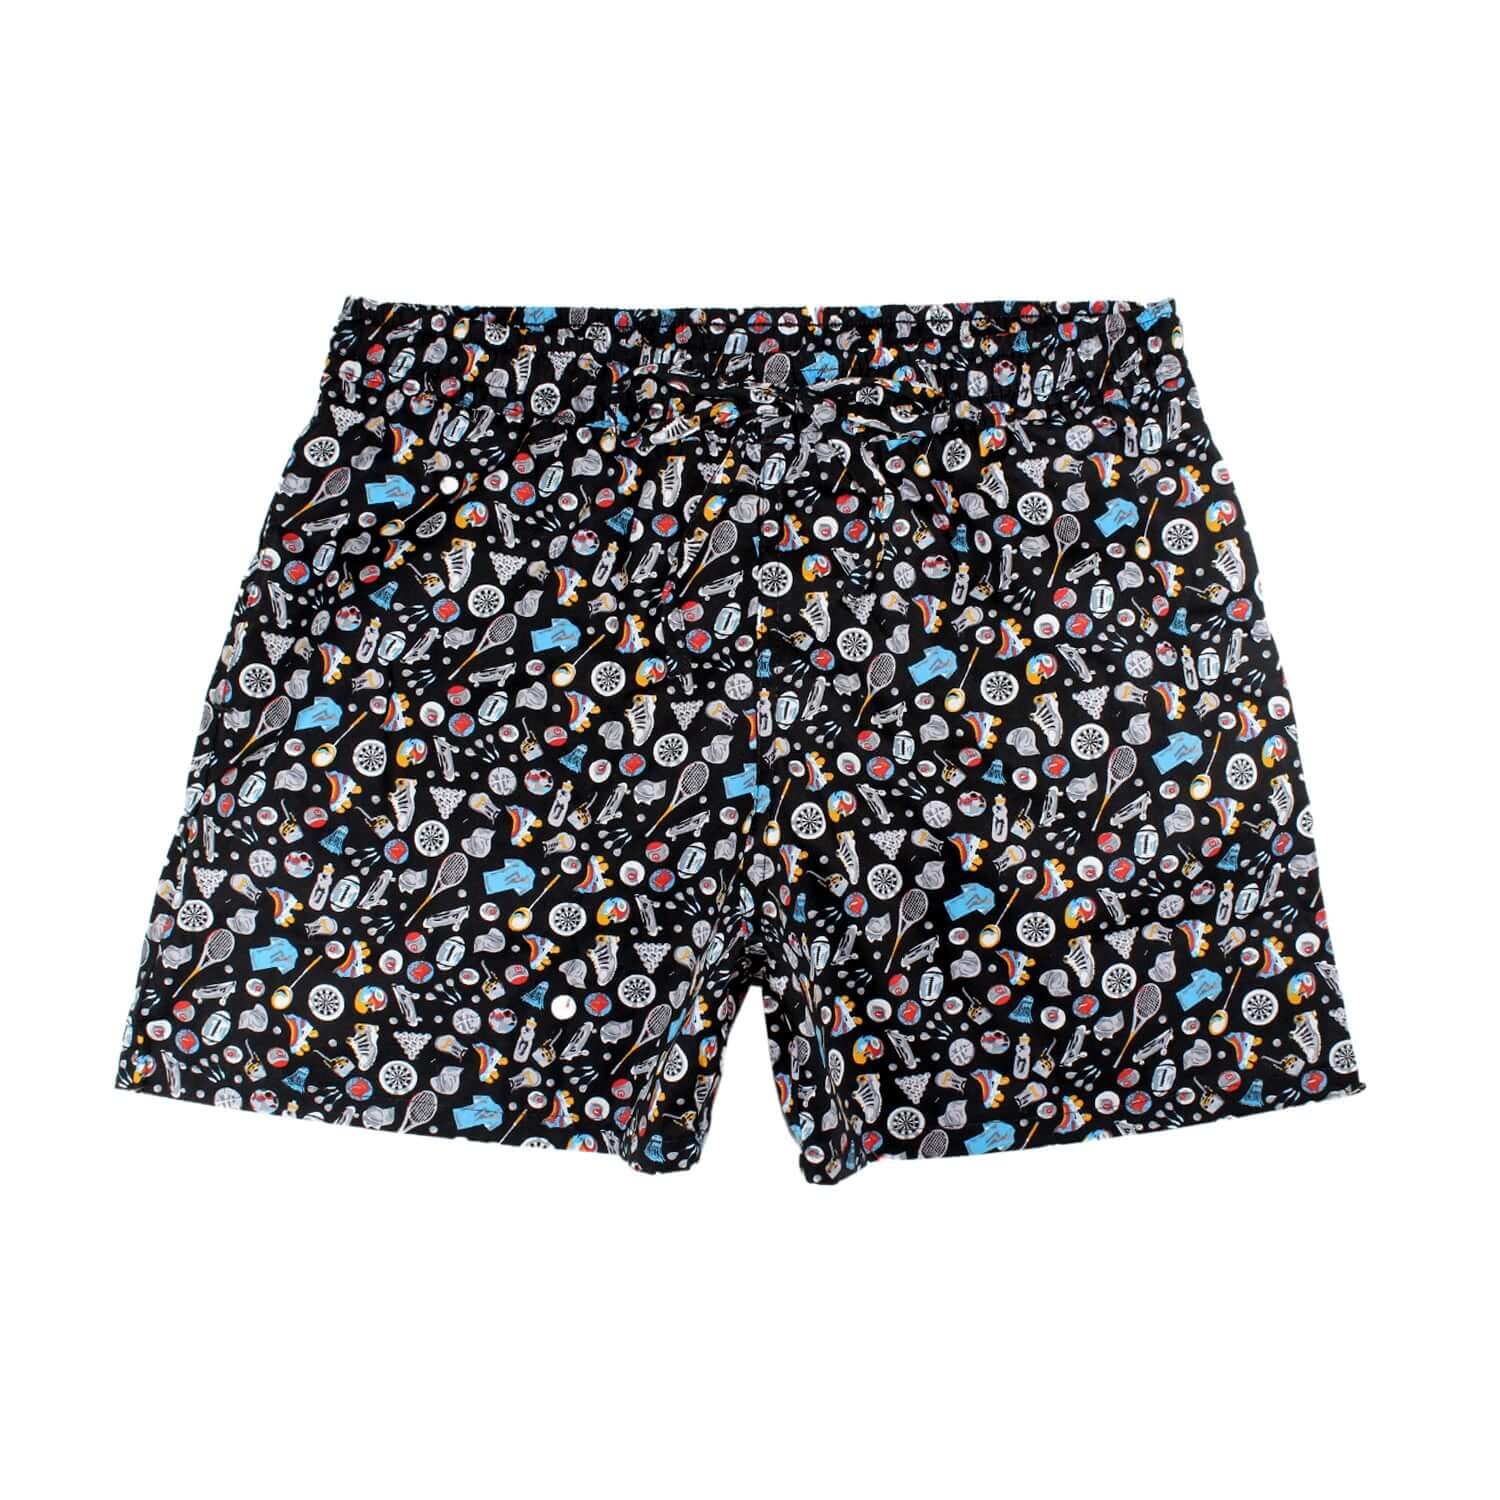 PYJAMA SPORTS JR - Clorofila Sea Wear